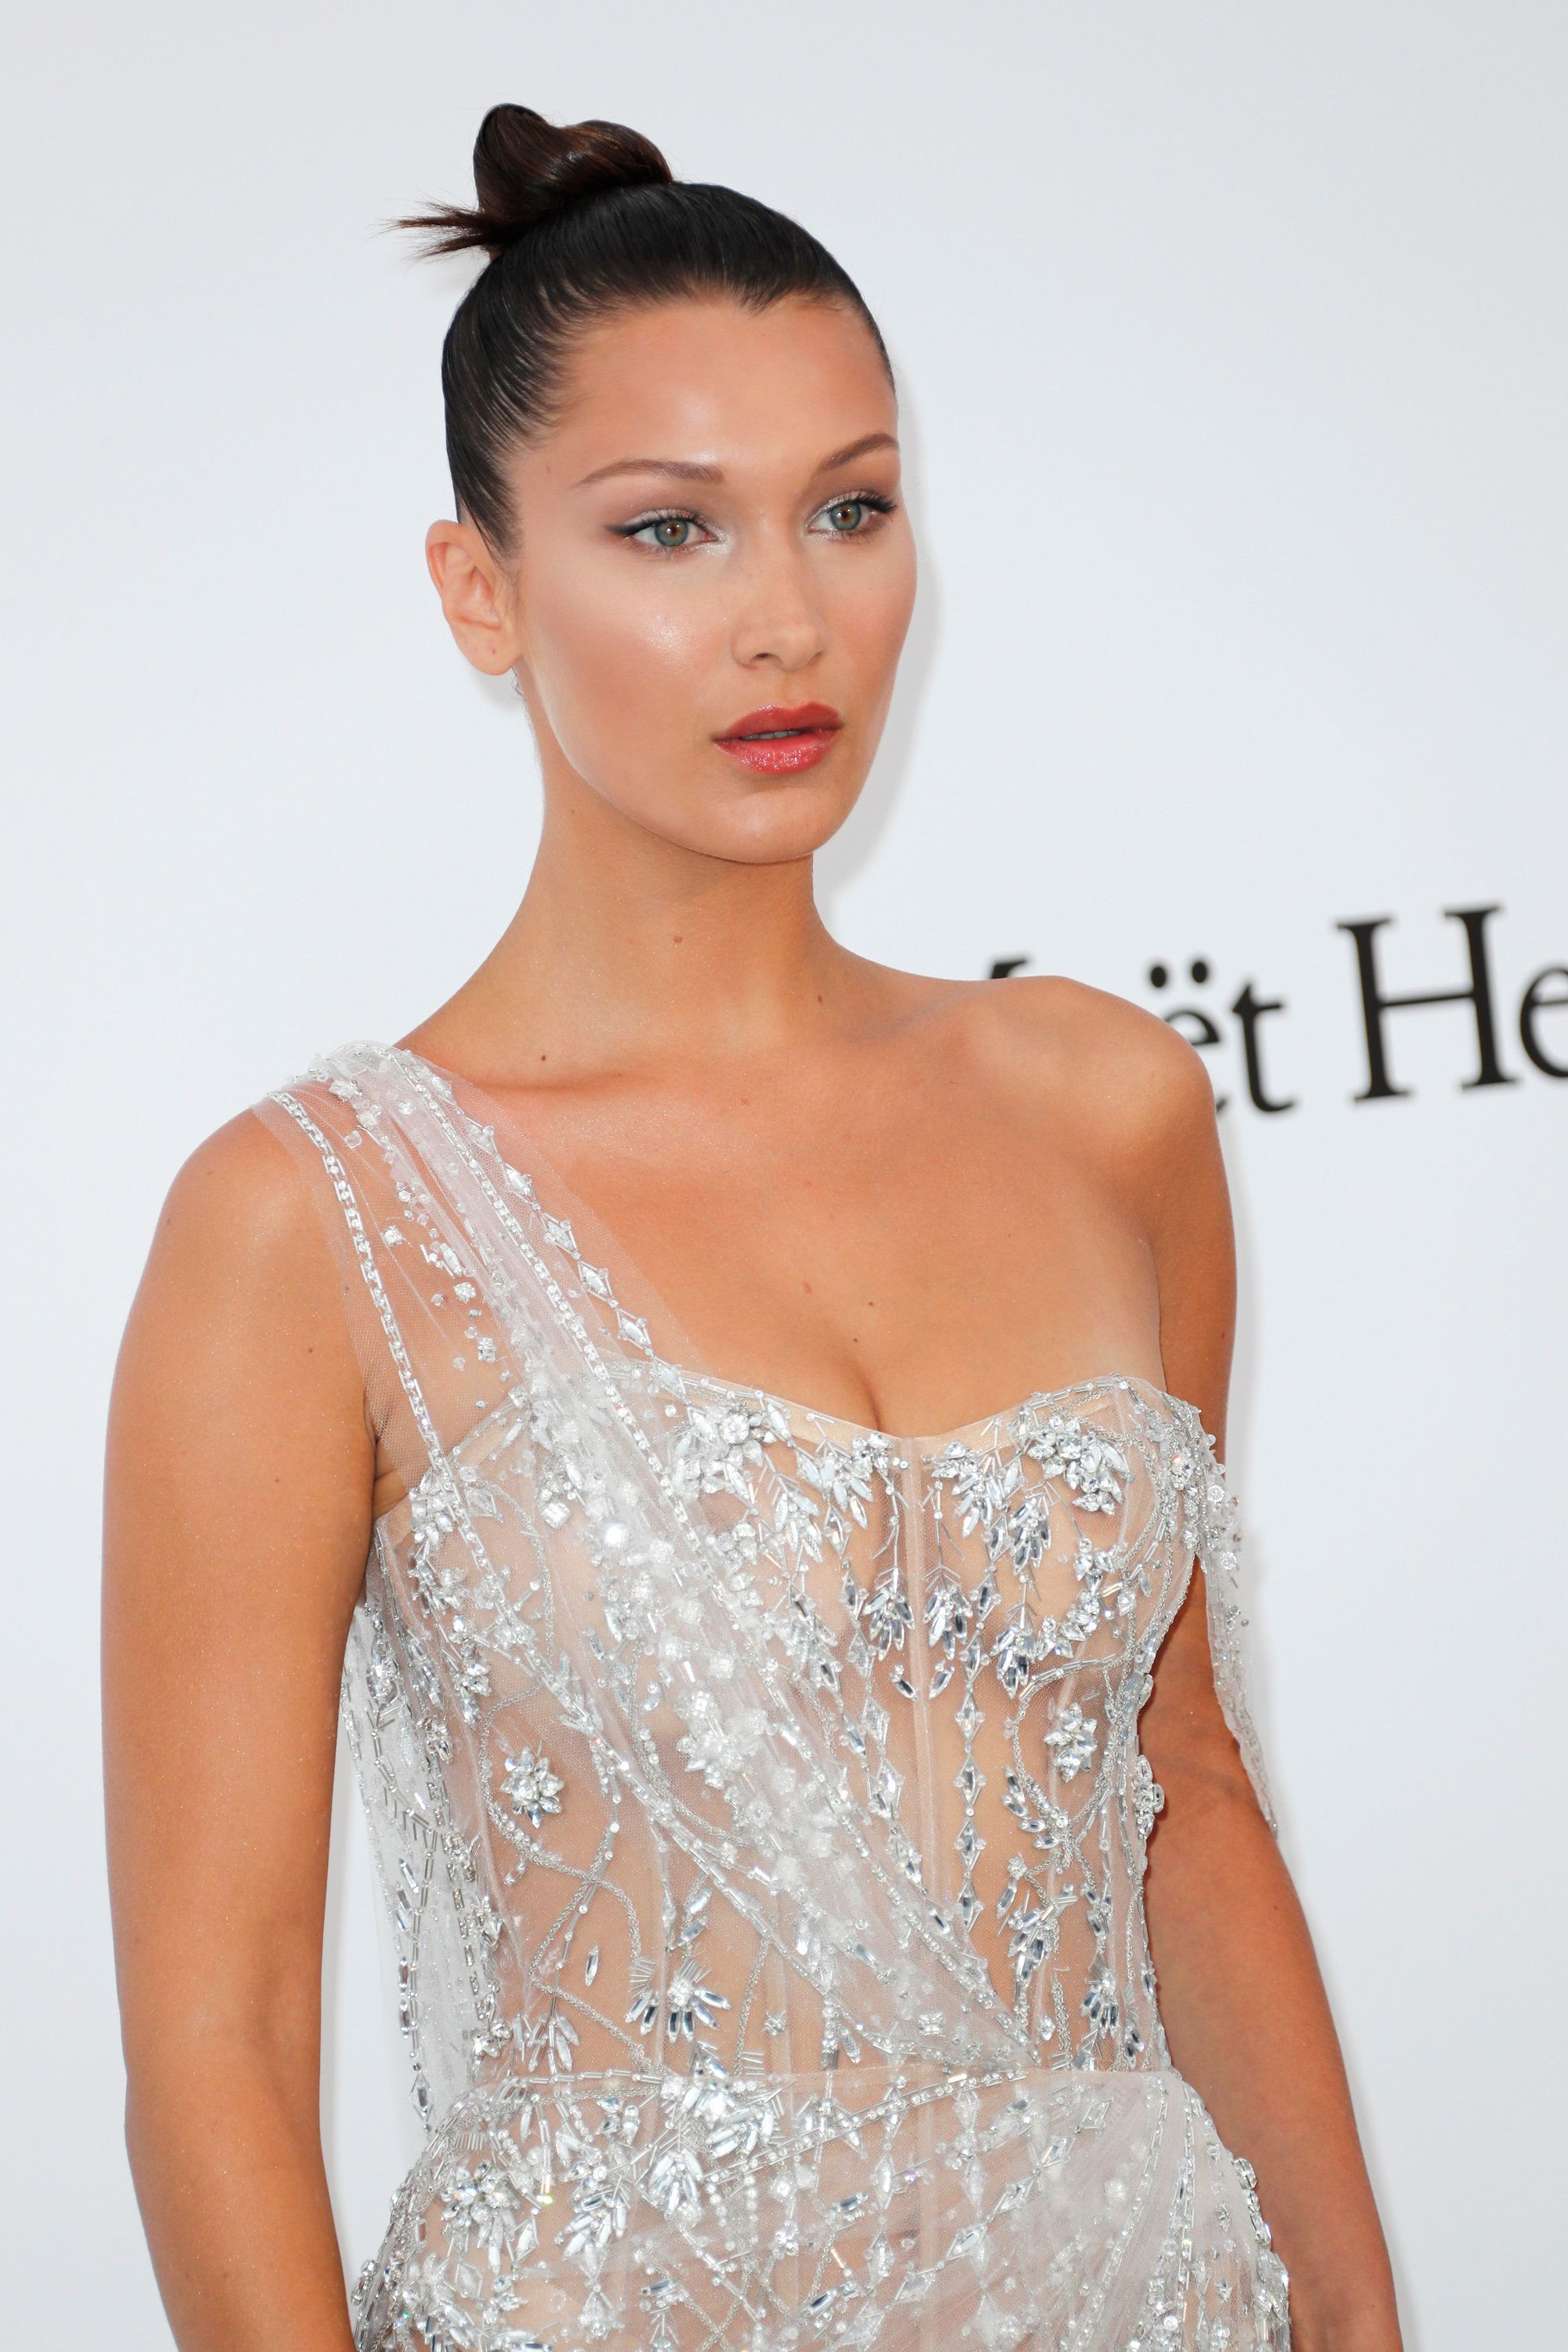 Bella Hadid Goes Nearly Naked On The Cannes Red